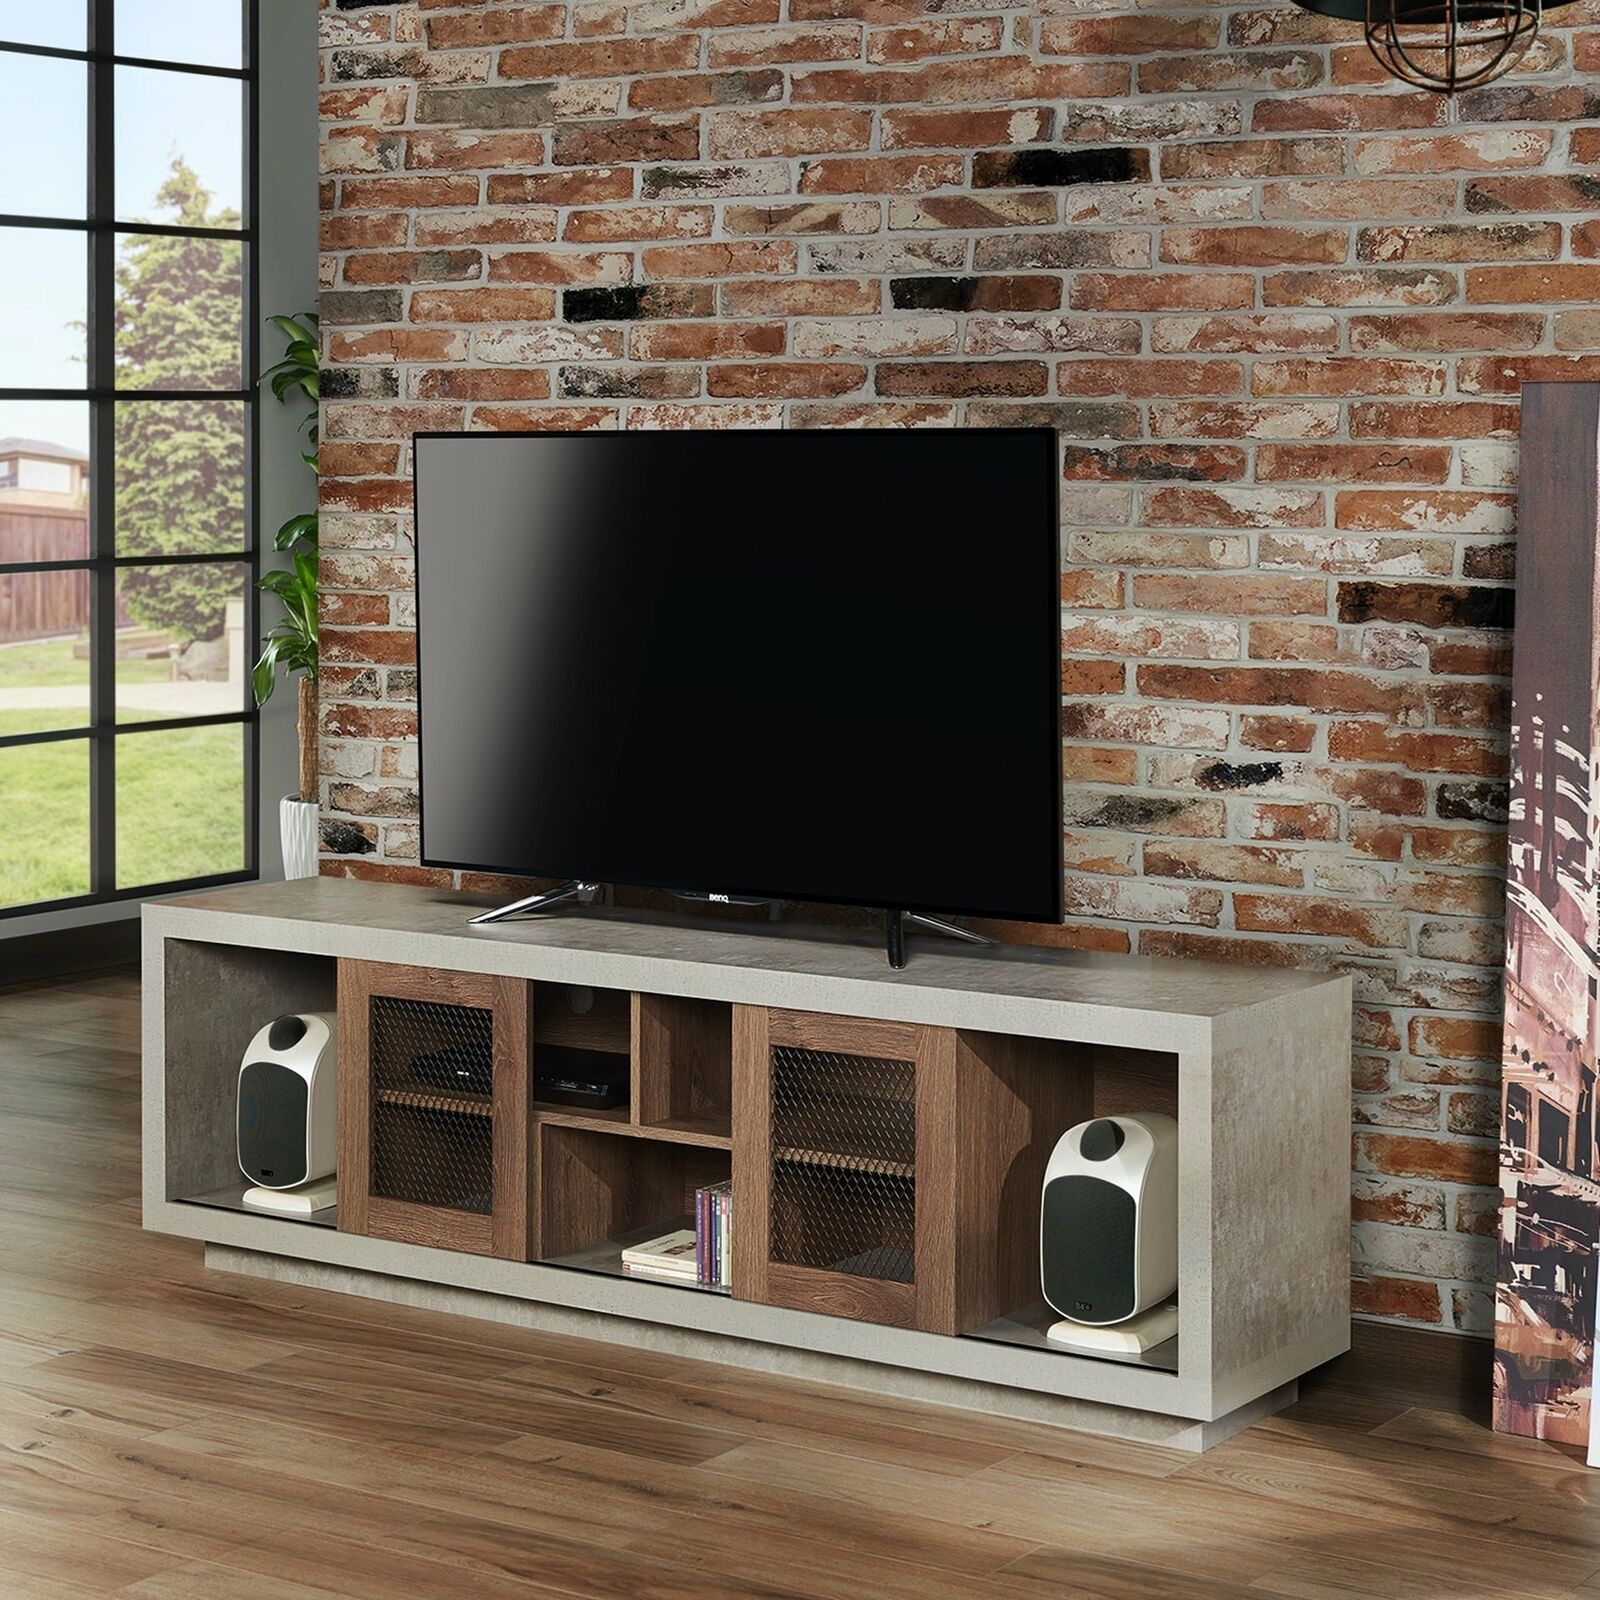 Selefin Industrial 71-Inch Cement-Like Multi-Storage Tv regarding Industrial Cement-Like Multi-Storage Dining Buffets (Image 29 of 30)